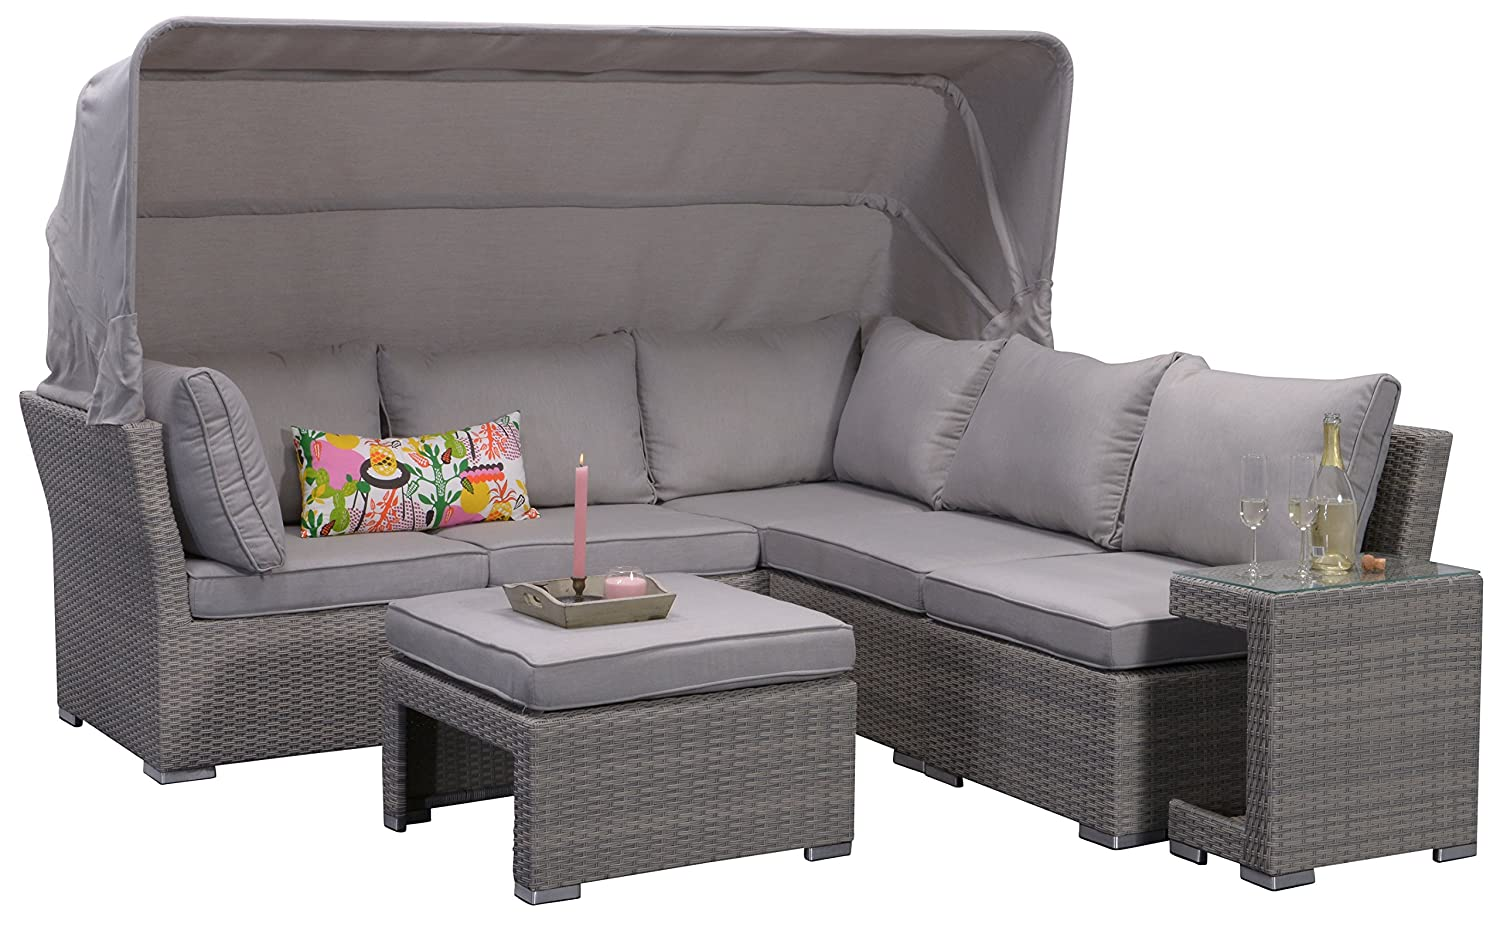 garden impressions 07198gt lounge set kuba shadow 226 x 221 x 75 cm grau jetzt kaufen. Black Bedroom Furniture Sets. Home Design Ideas